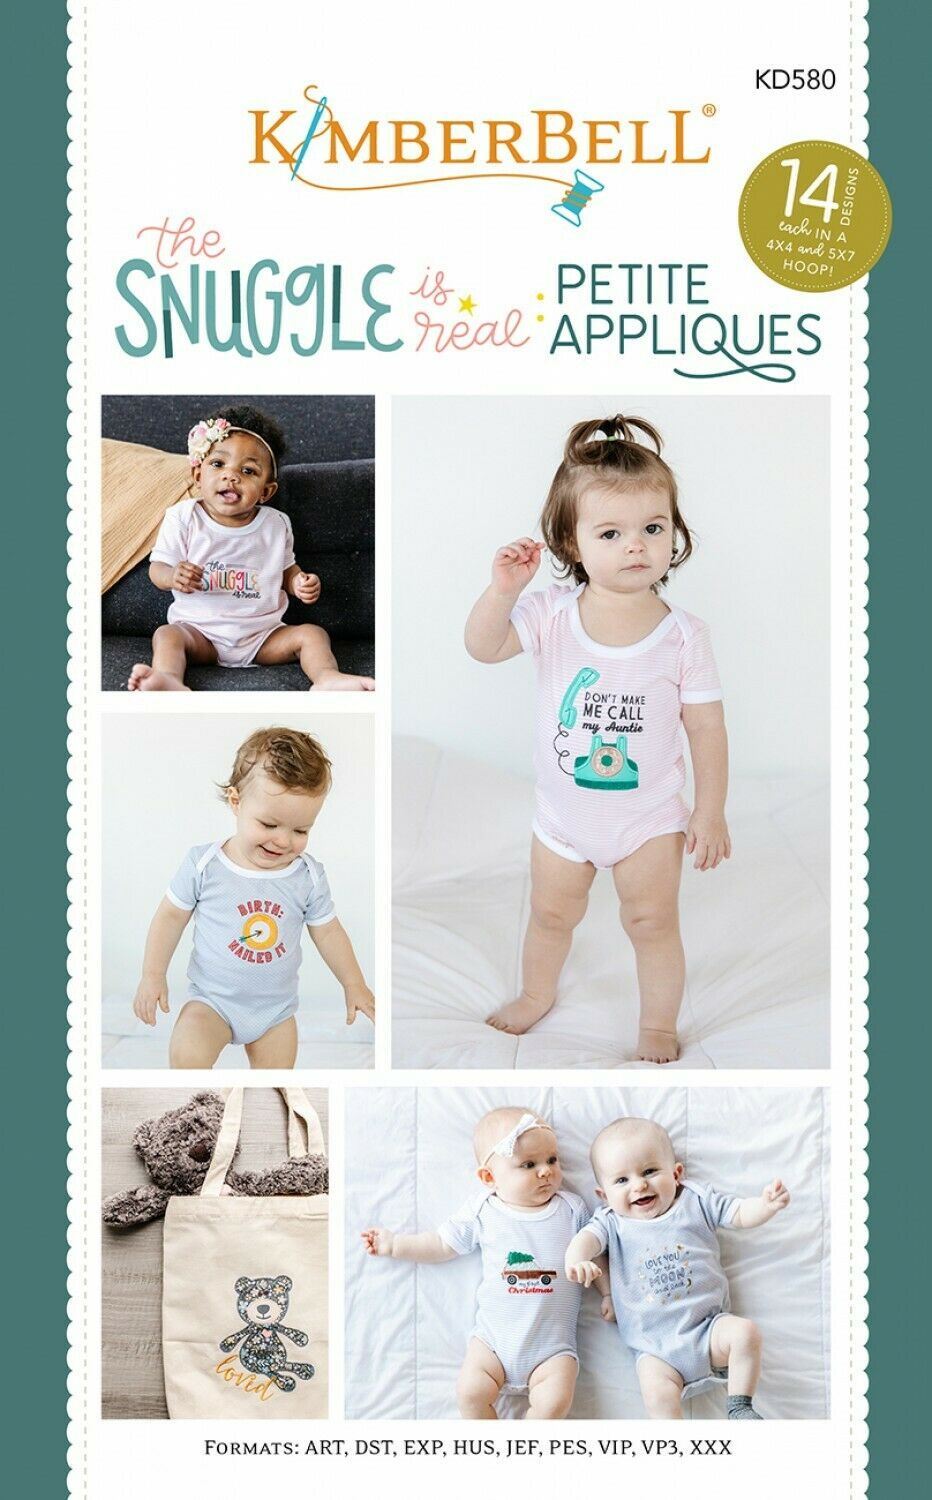 Snuggle is Real: Petite Appliques CD by Kimberbell